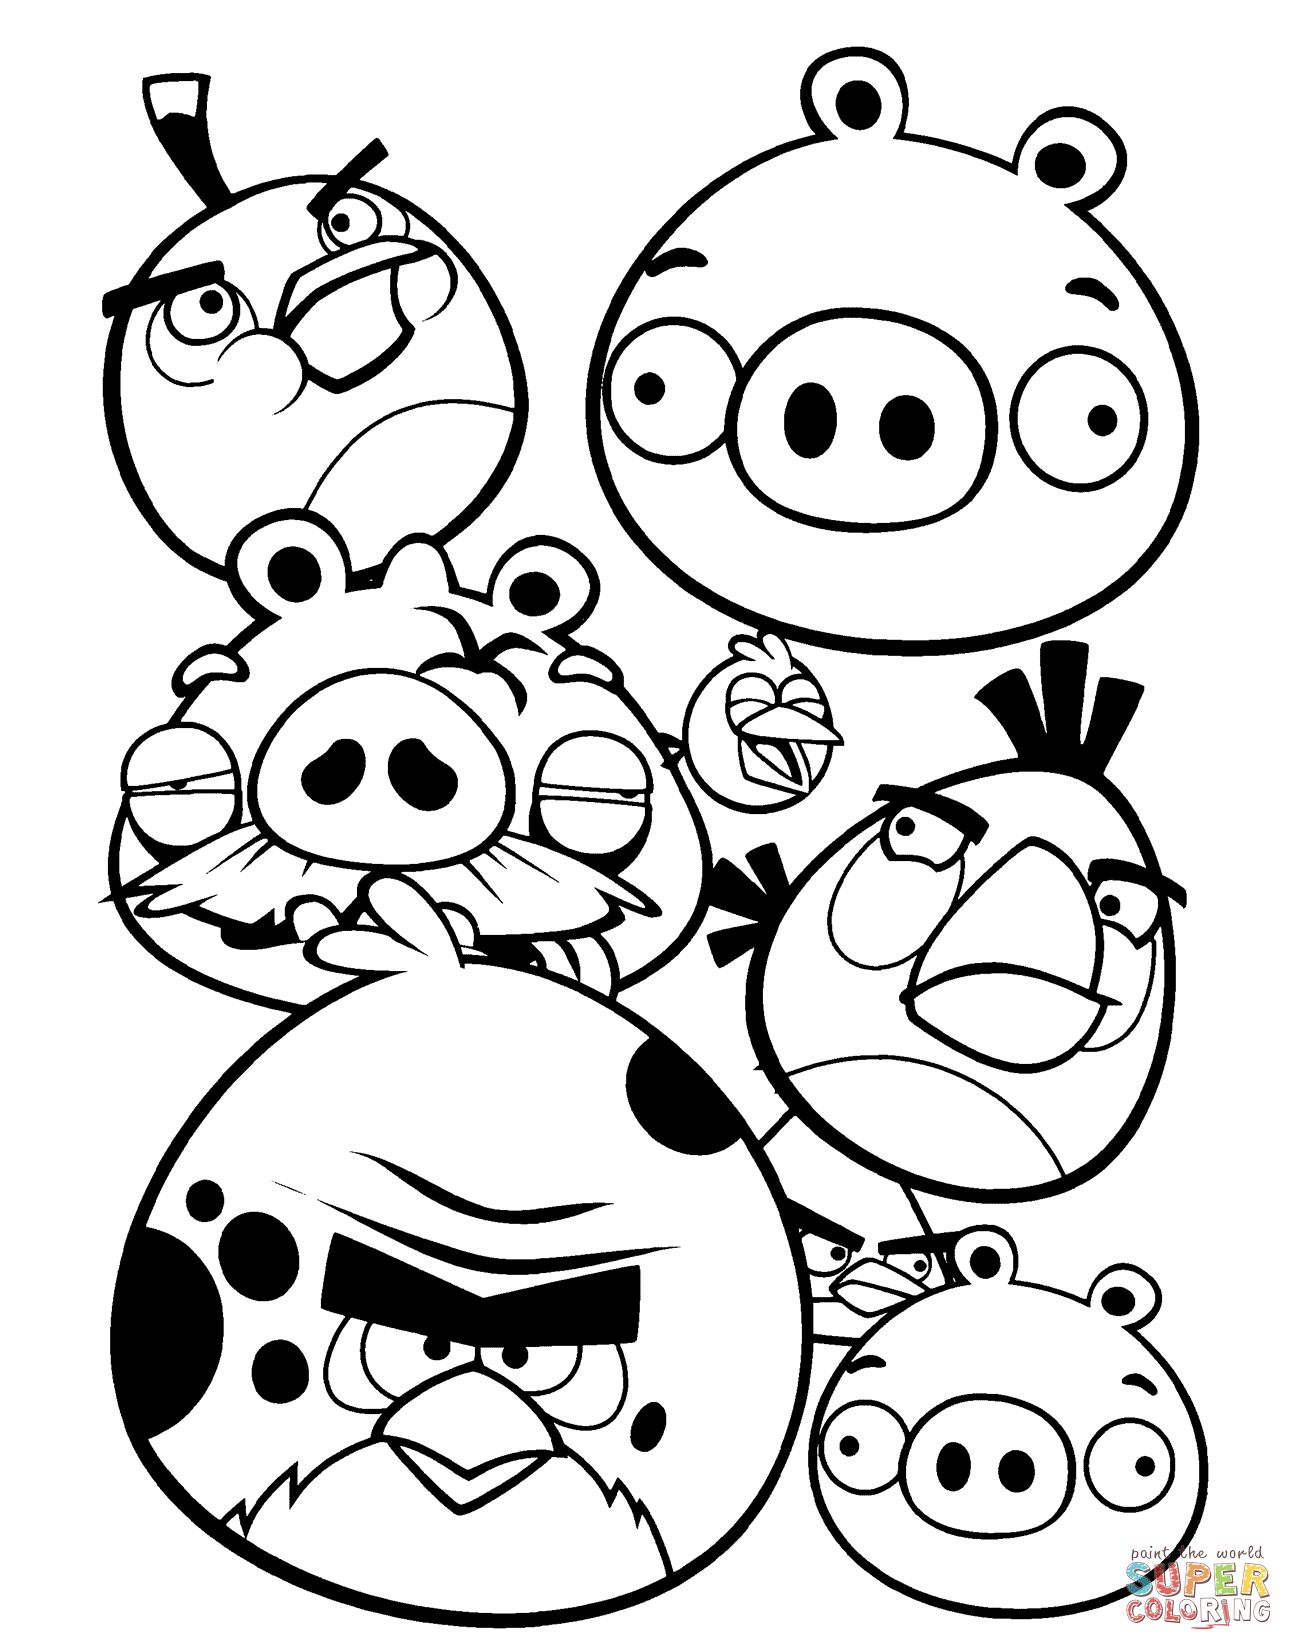 angry birds 2 coloring pages angry birds 2 coloring pages angry 2 pages coloring birds